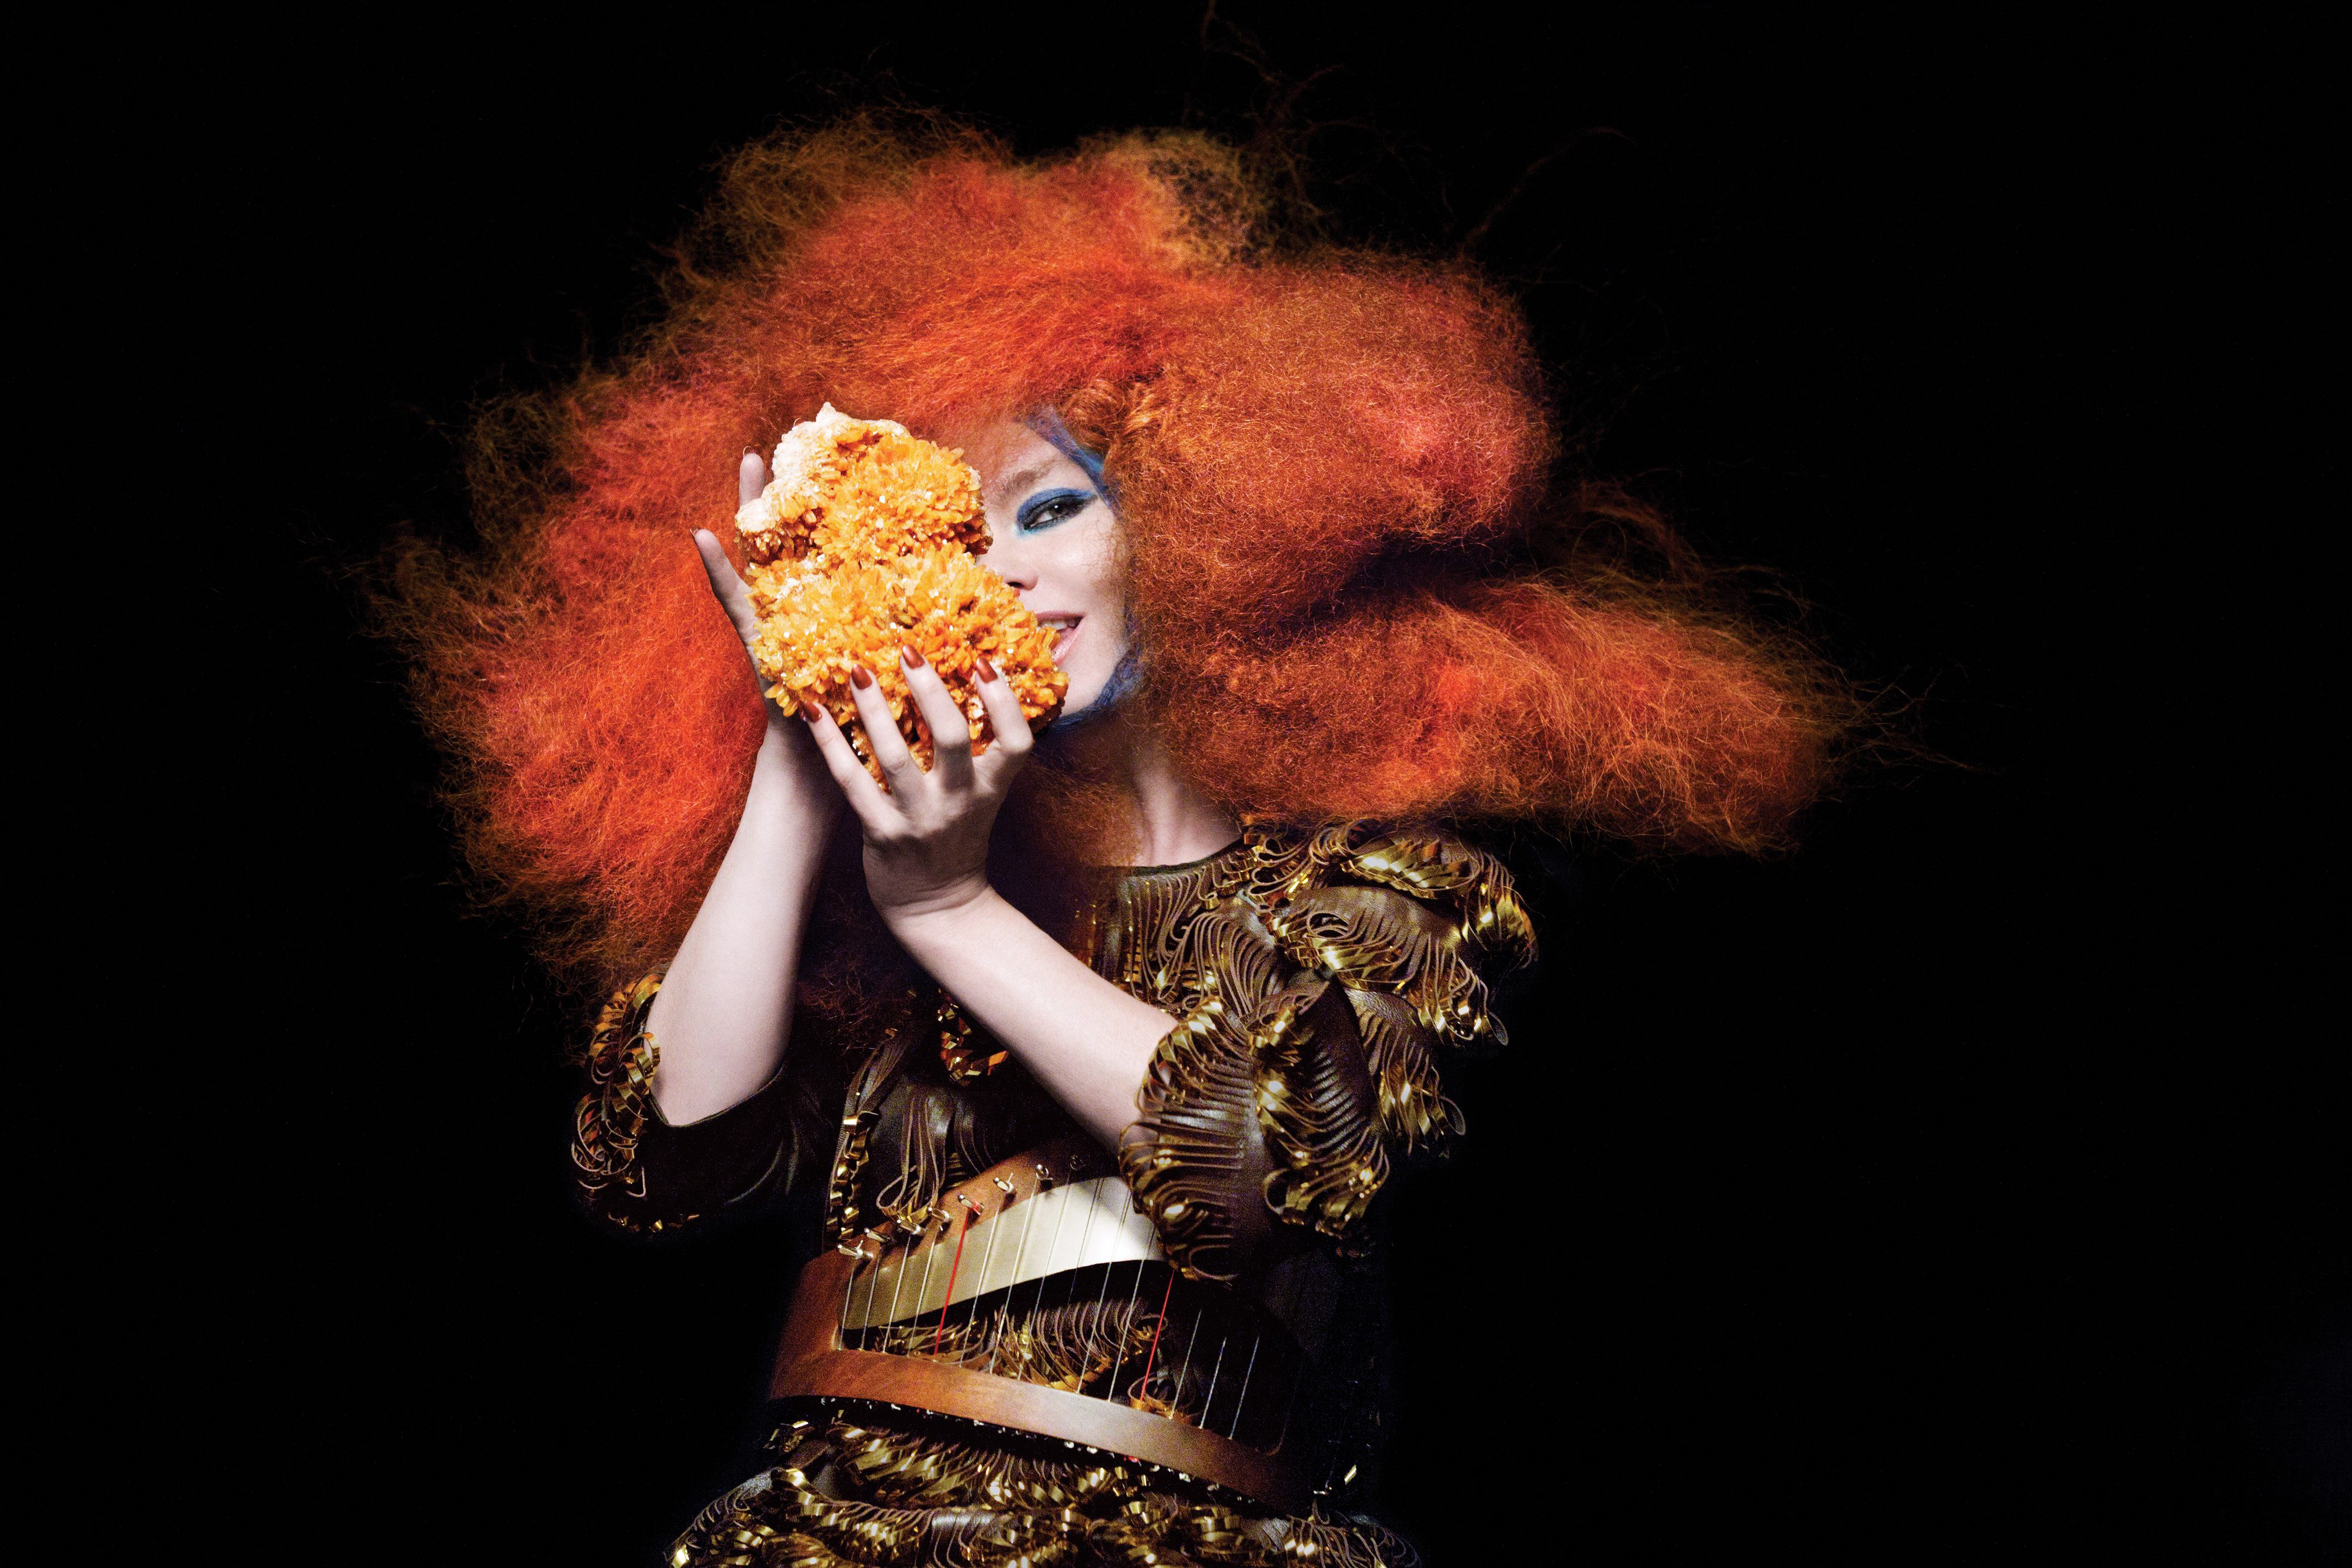 Interview: Björk talks piracy, punk, Lady Gaga, and Biophilia